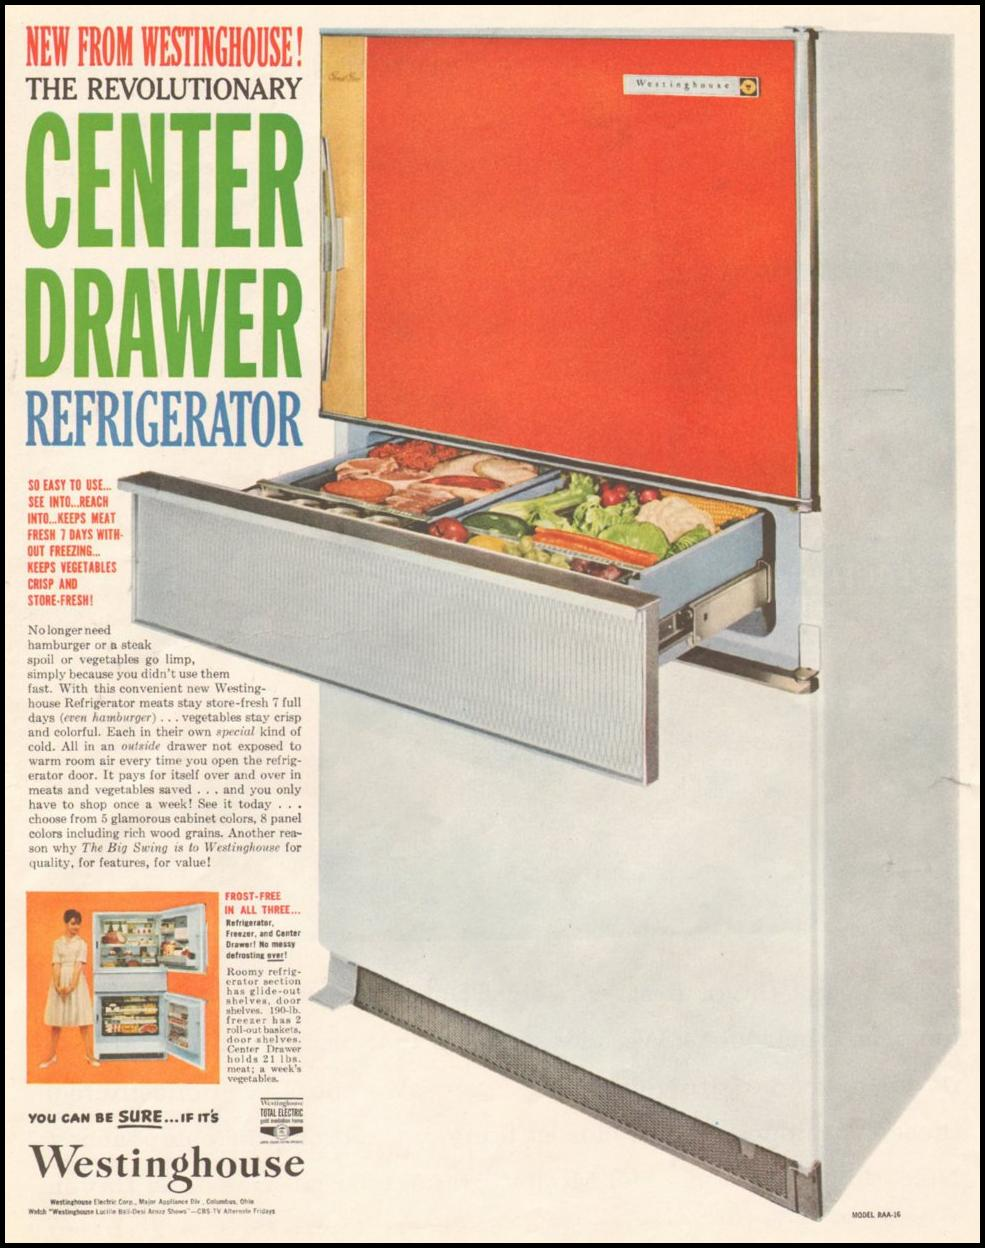 WESTINGHOUSE CENTER DRAWER REFRIGERATOR SATURDAY EVENING POST 06/11/1960 p. 12